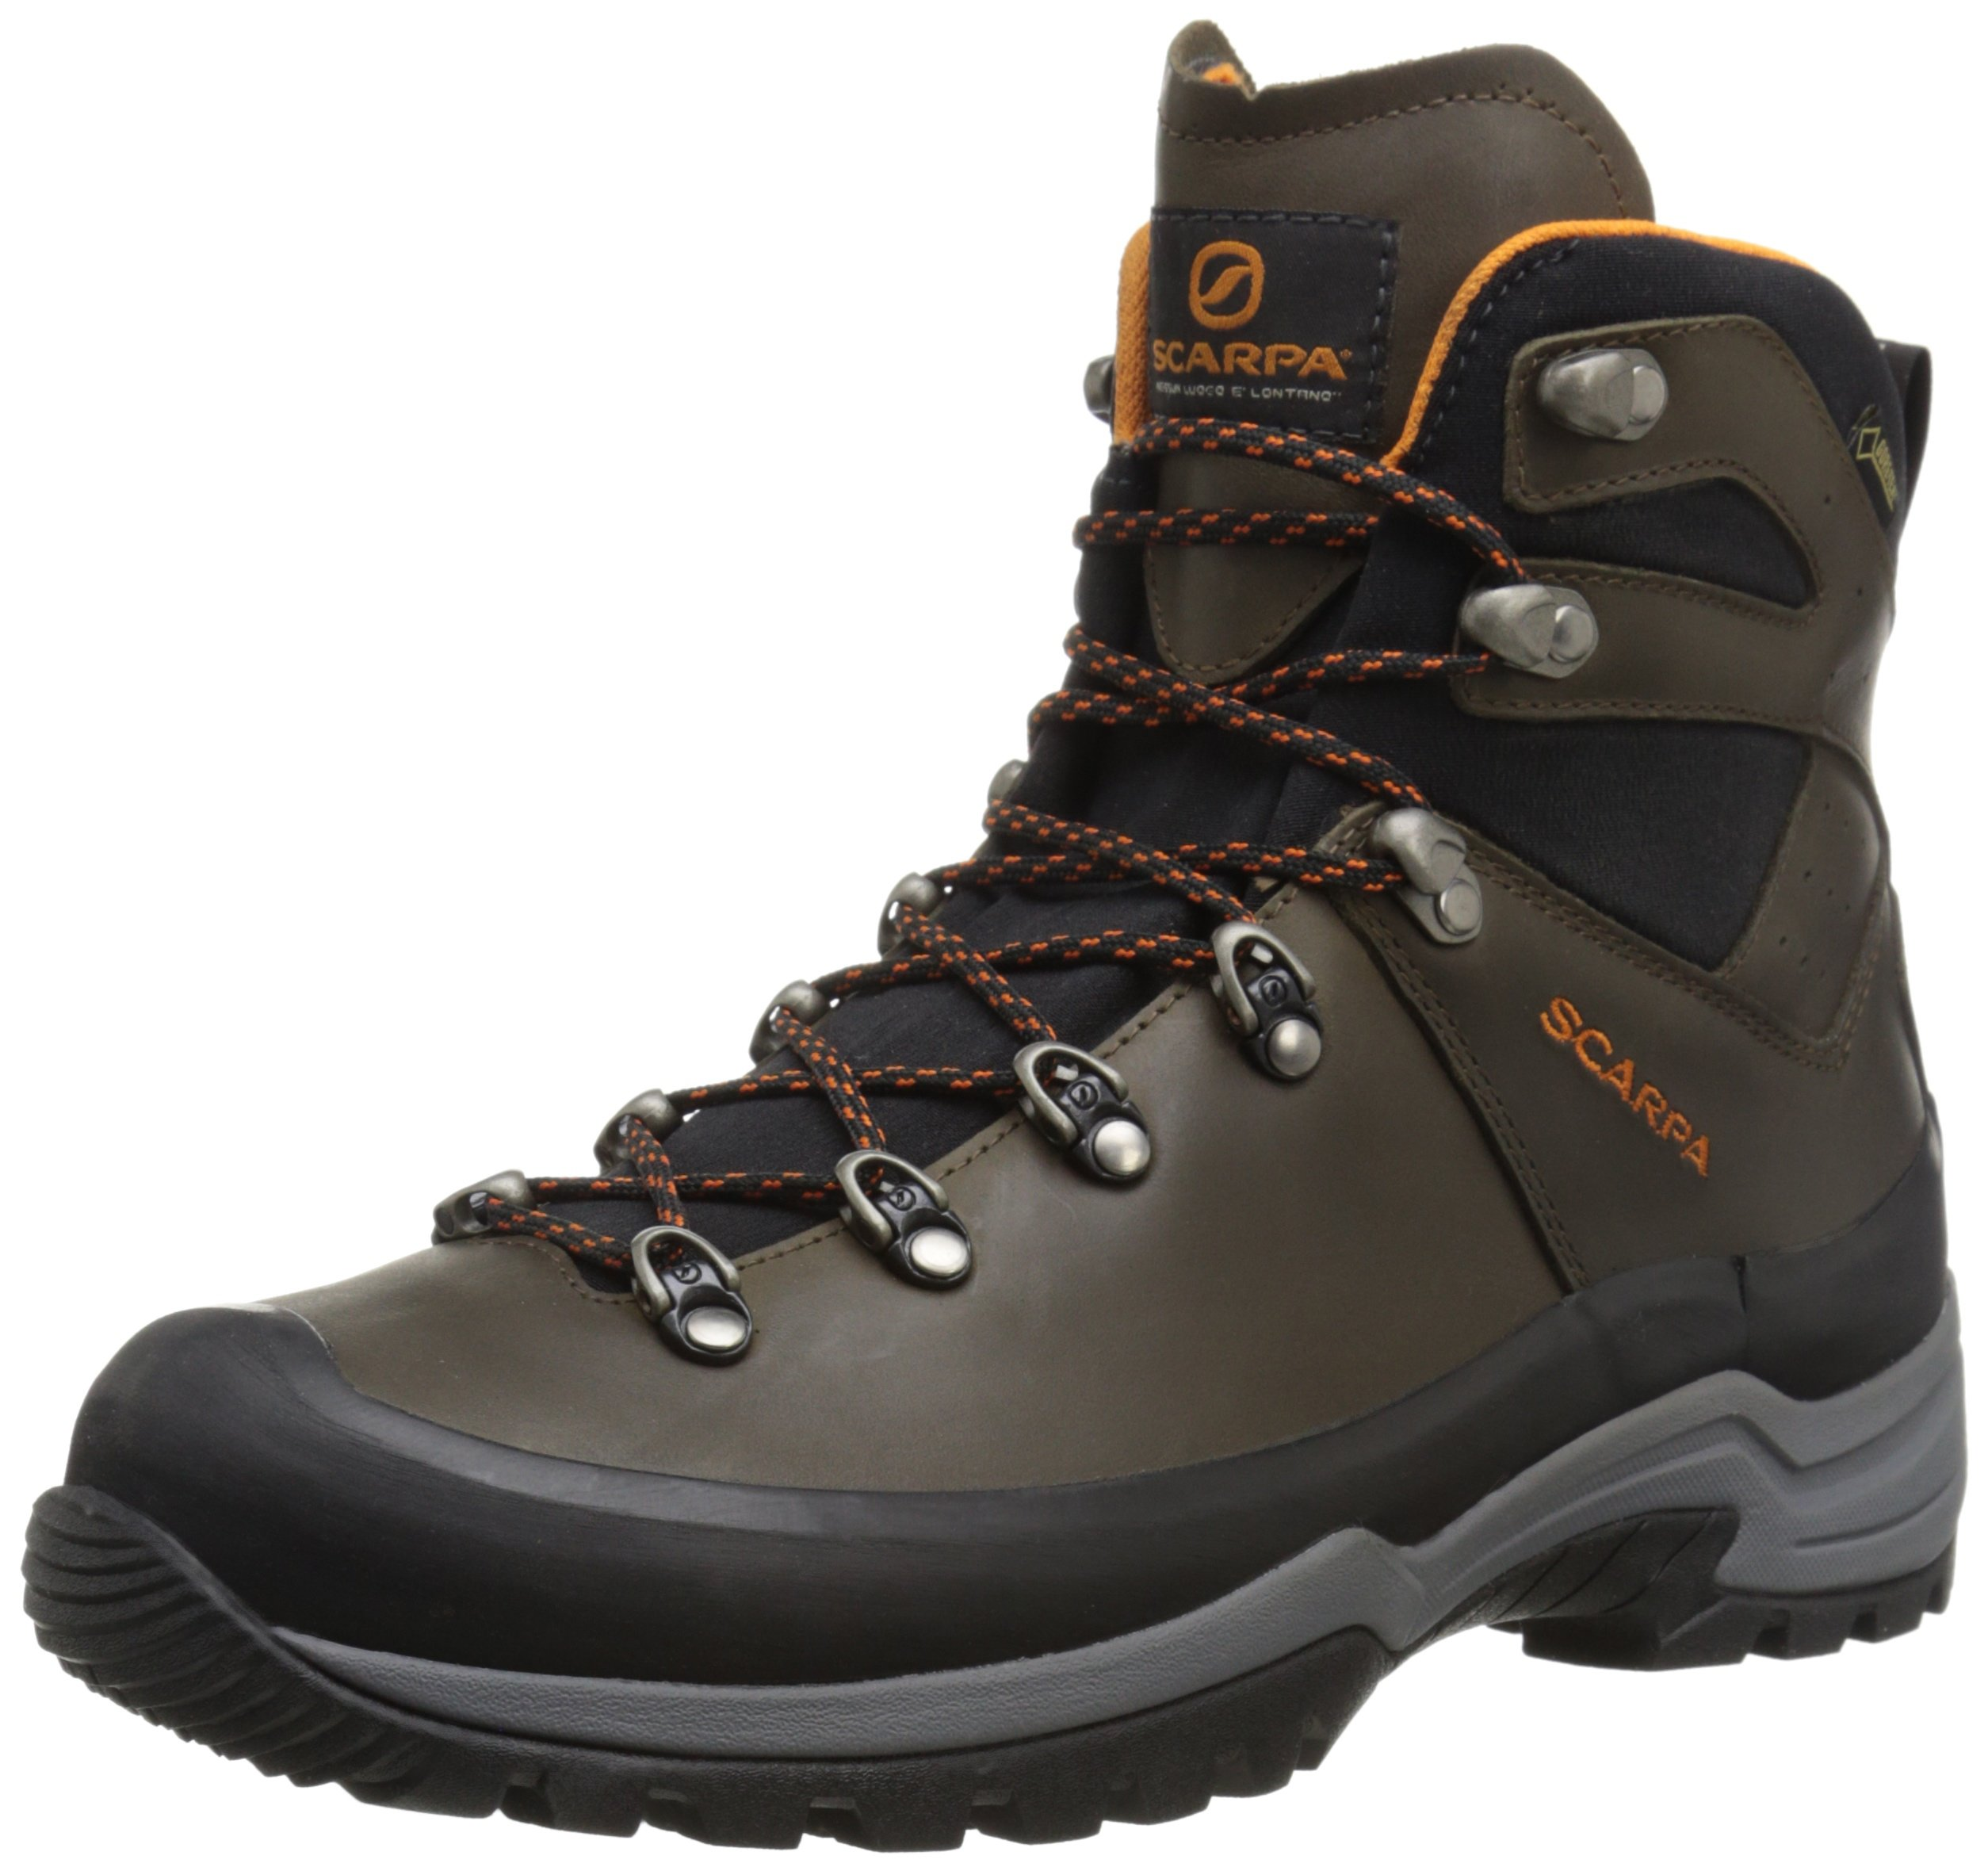 SCARPA Men's R-Evolution Plus GTX Hiking Boot, Tundra, 40.5 EU/7 2/3 M US